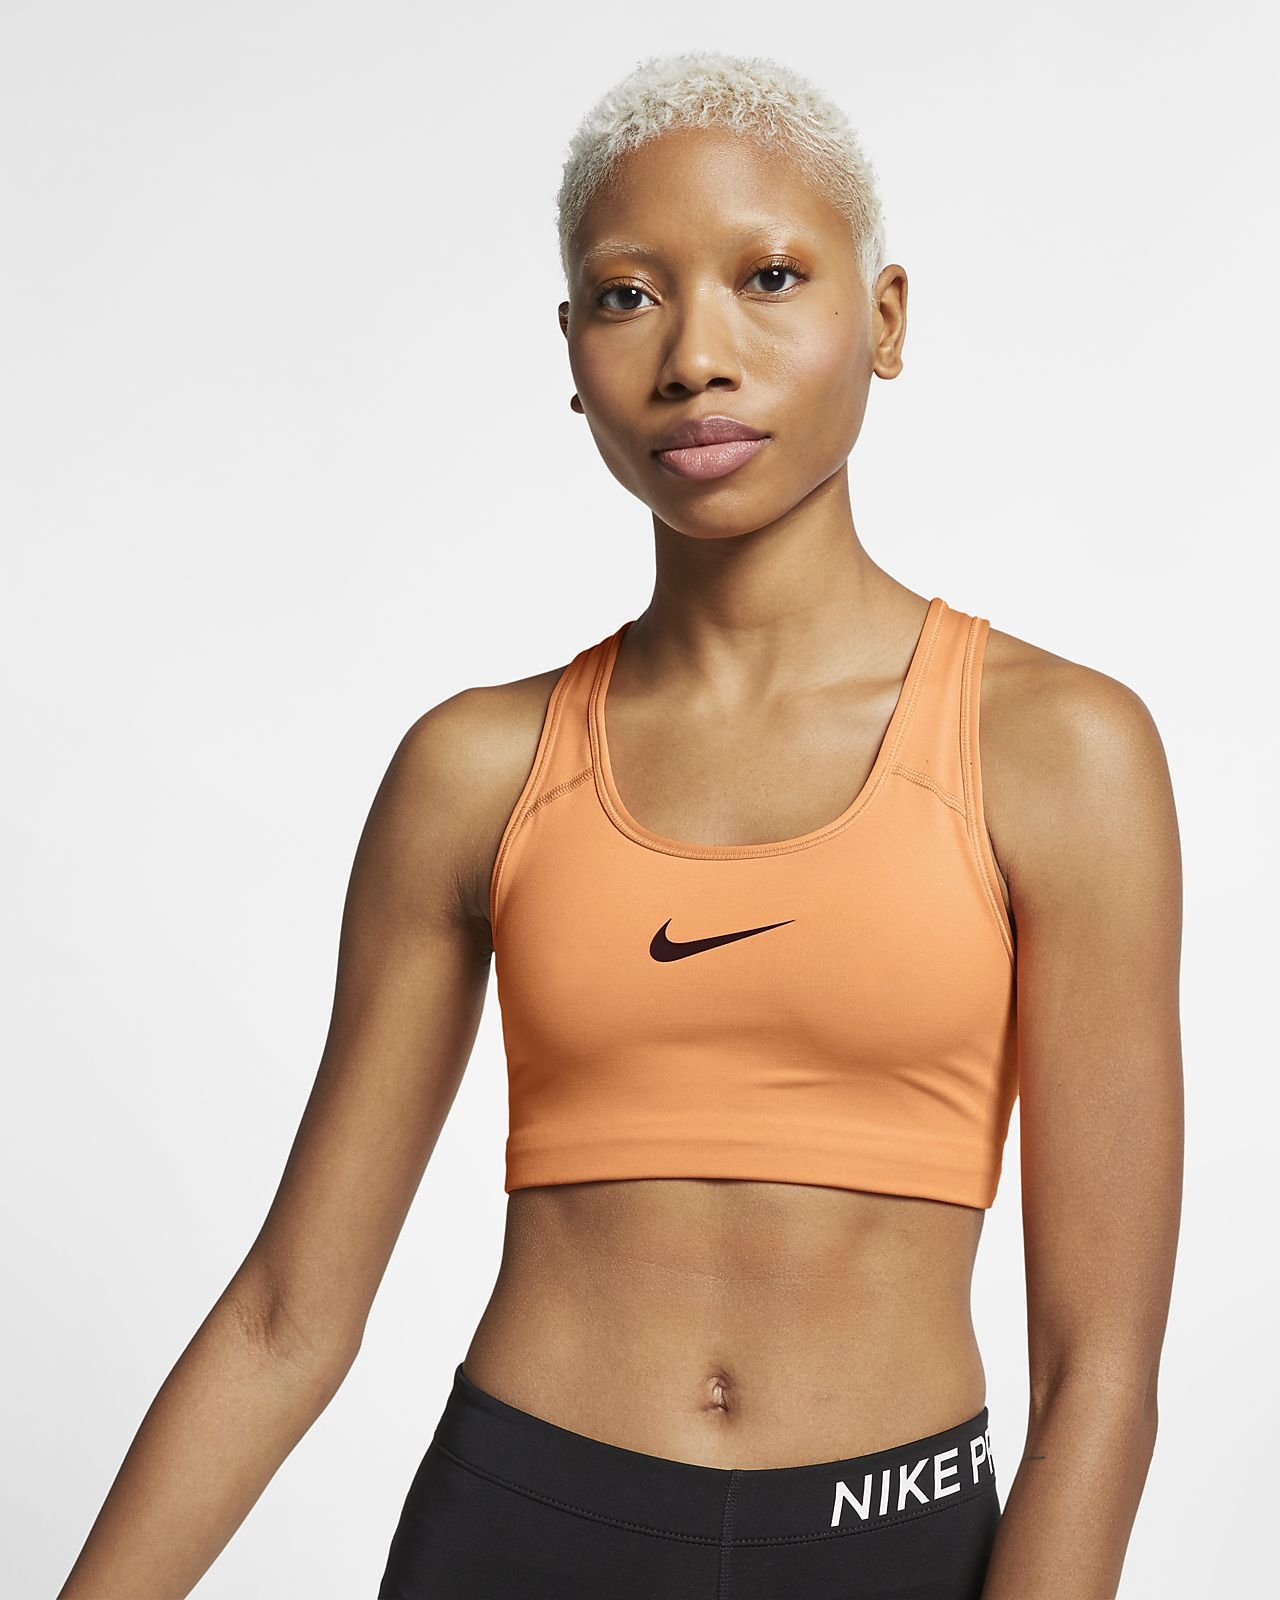 2d083181c71 Nike Women s Swoosh Medium Support Sports Bra. Nike.com